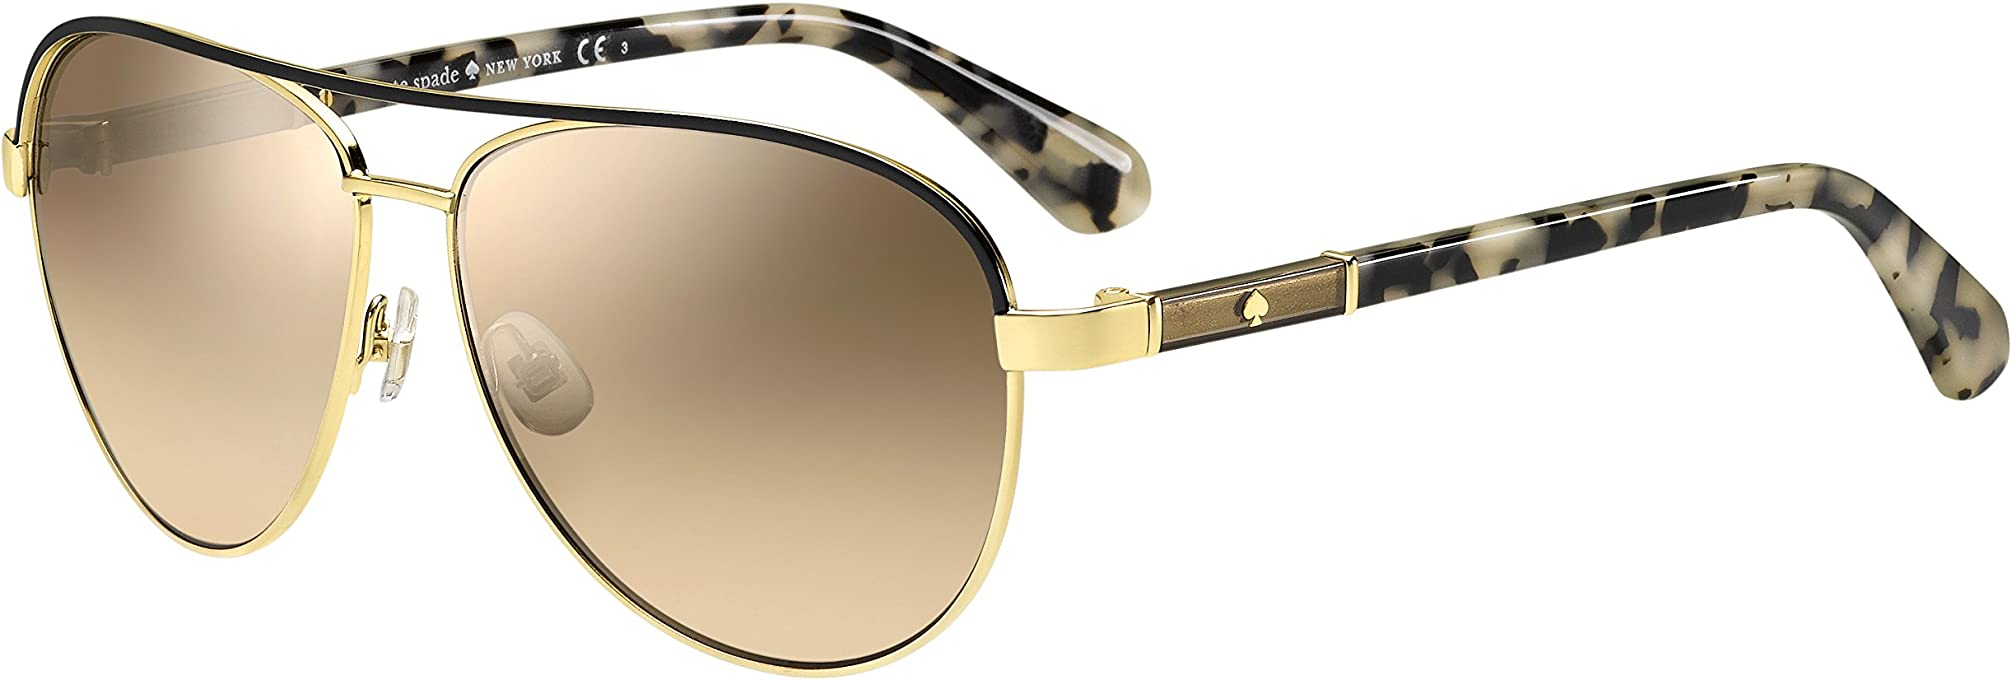 Kate Spade EMILYANNS Aviator 59 mm Sunglasses